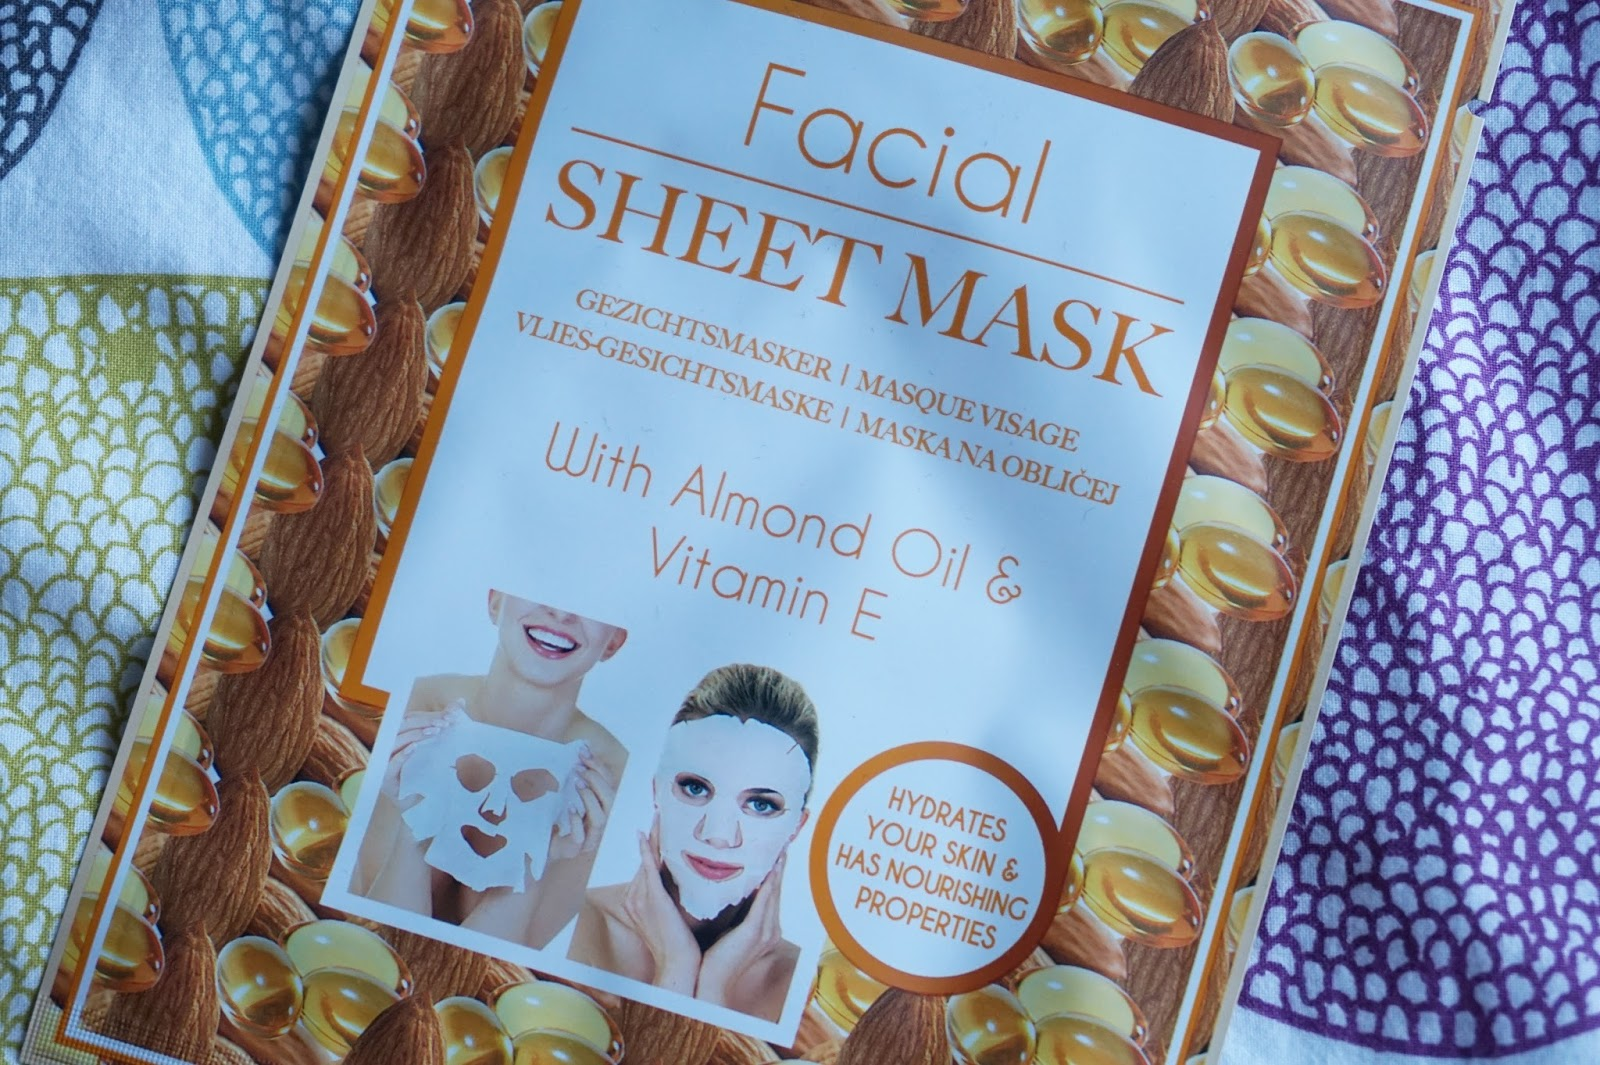 Action facial sheet mask with almond oil & vitamine E